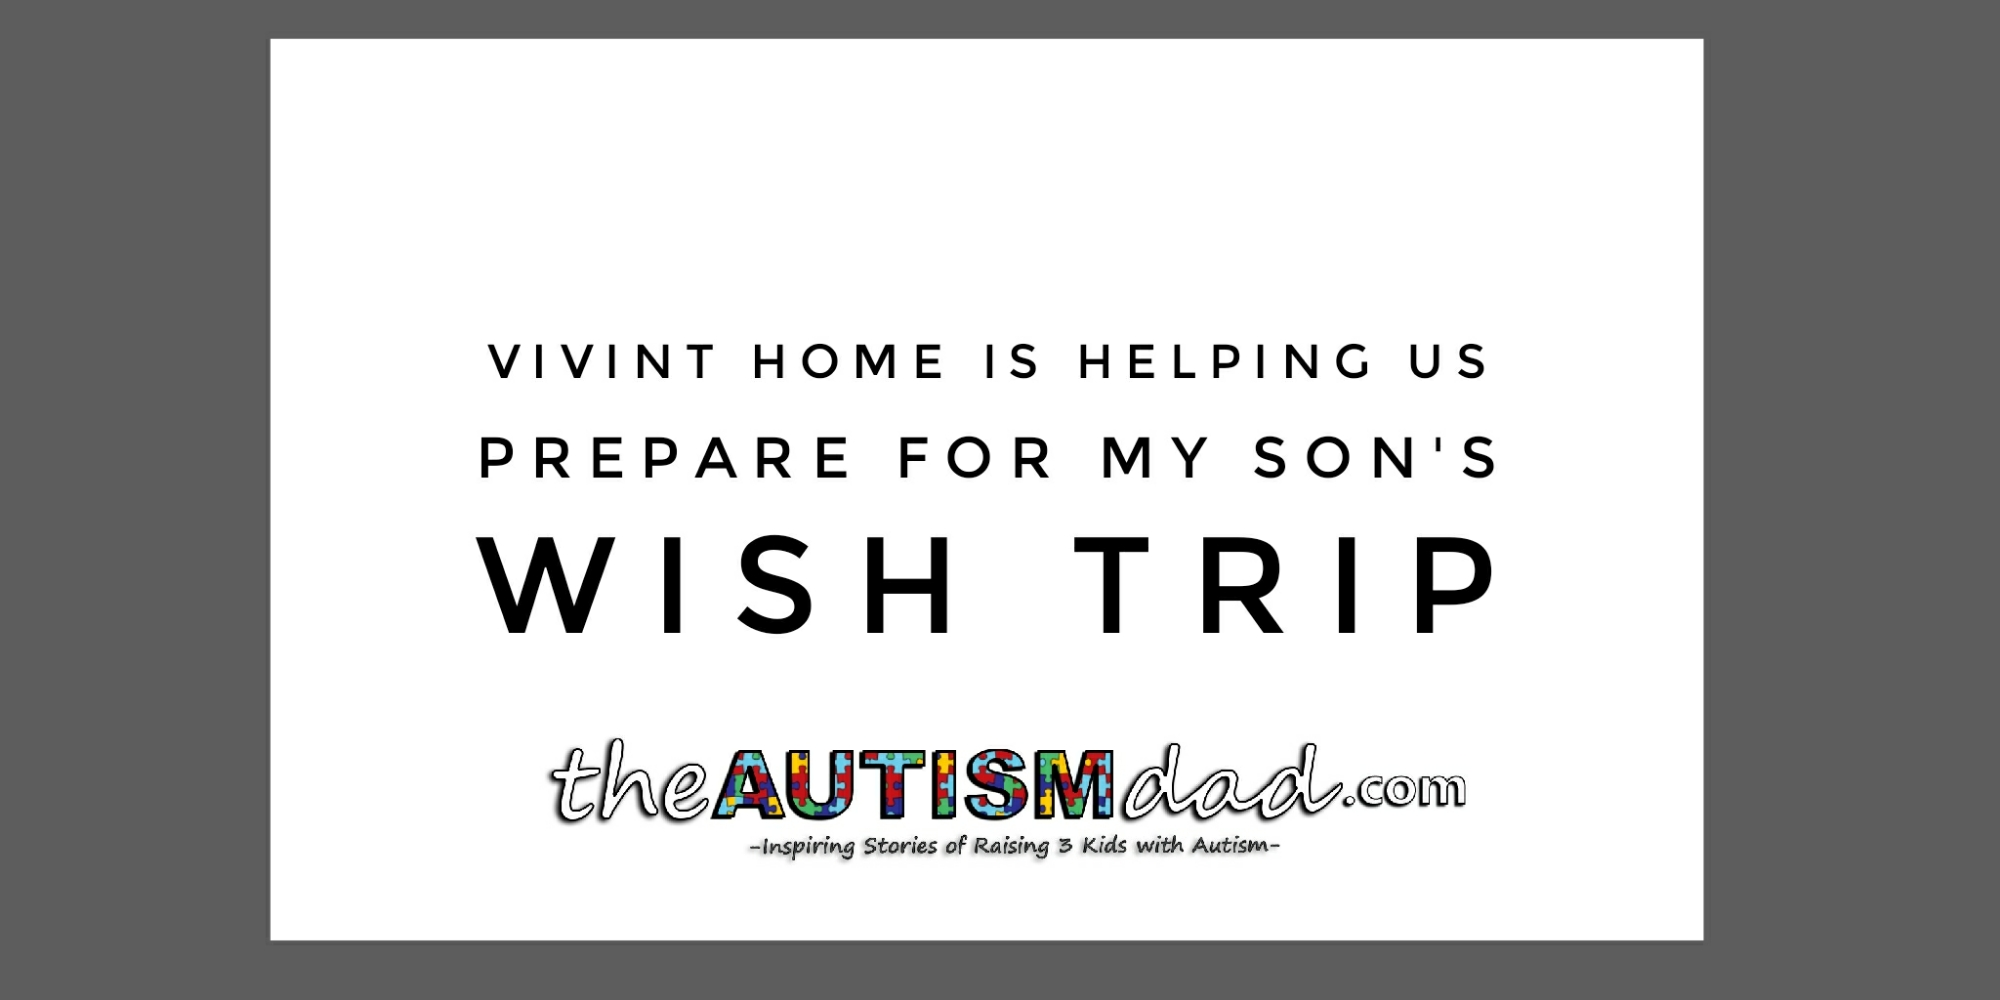 @VivintHome is helping us prepare for my son's Wish Trip